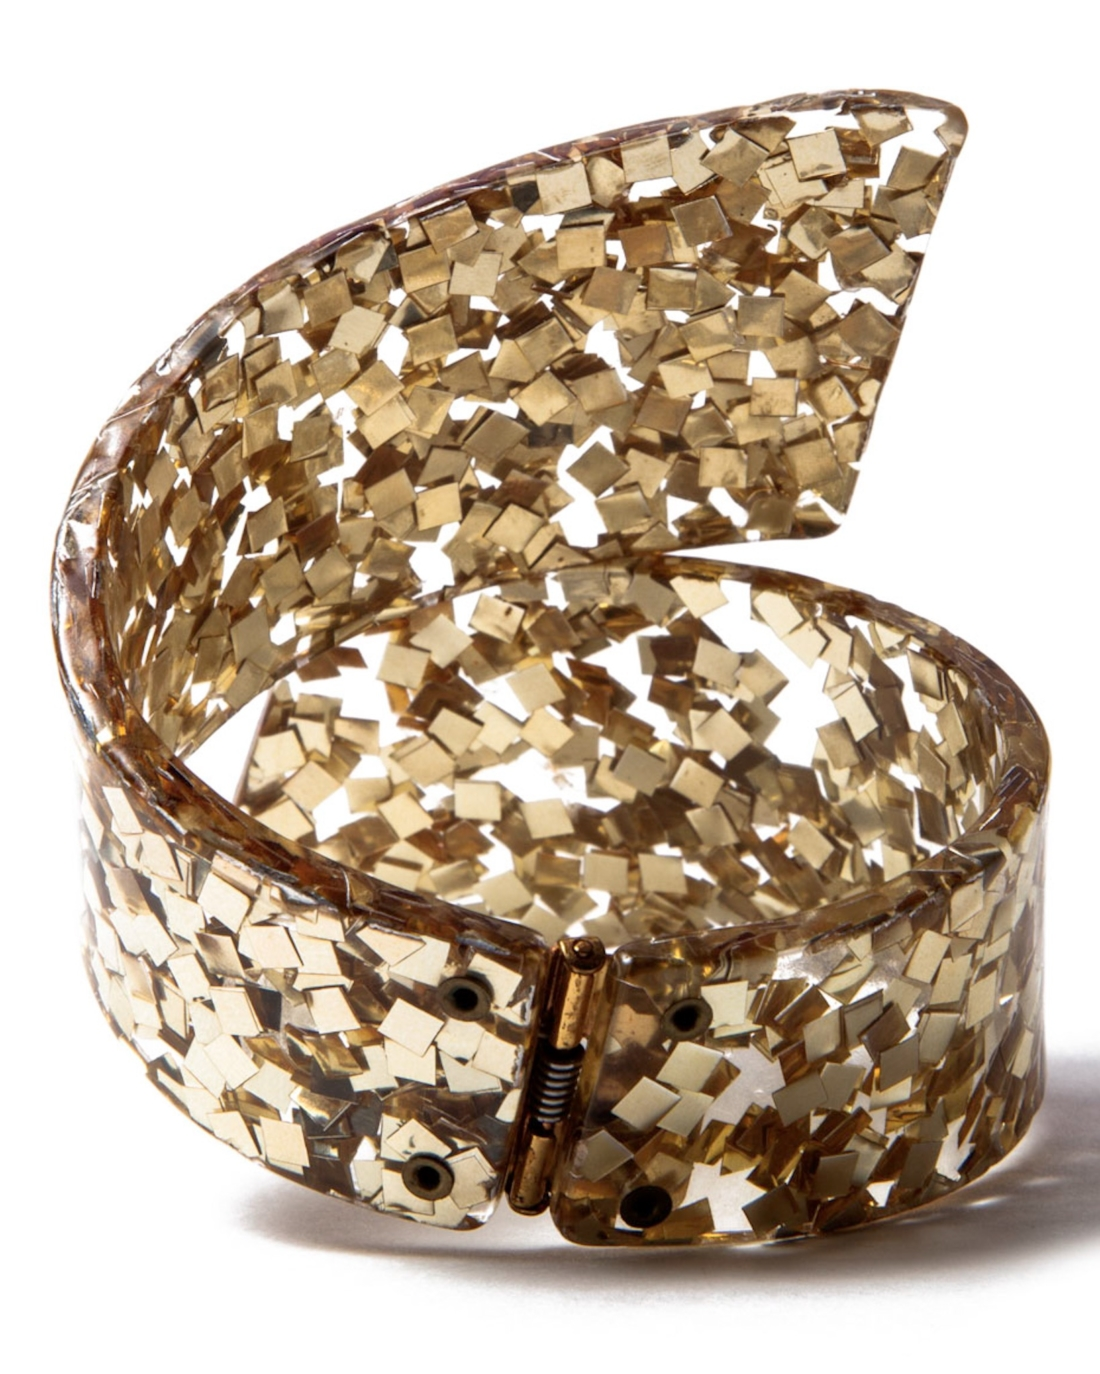 Vintage Gold Confetti Gone Lucite Wild Hinged Bracelet, circa 1950's